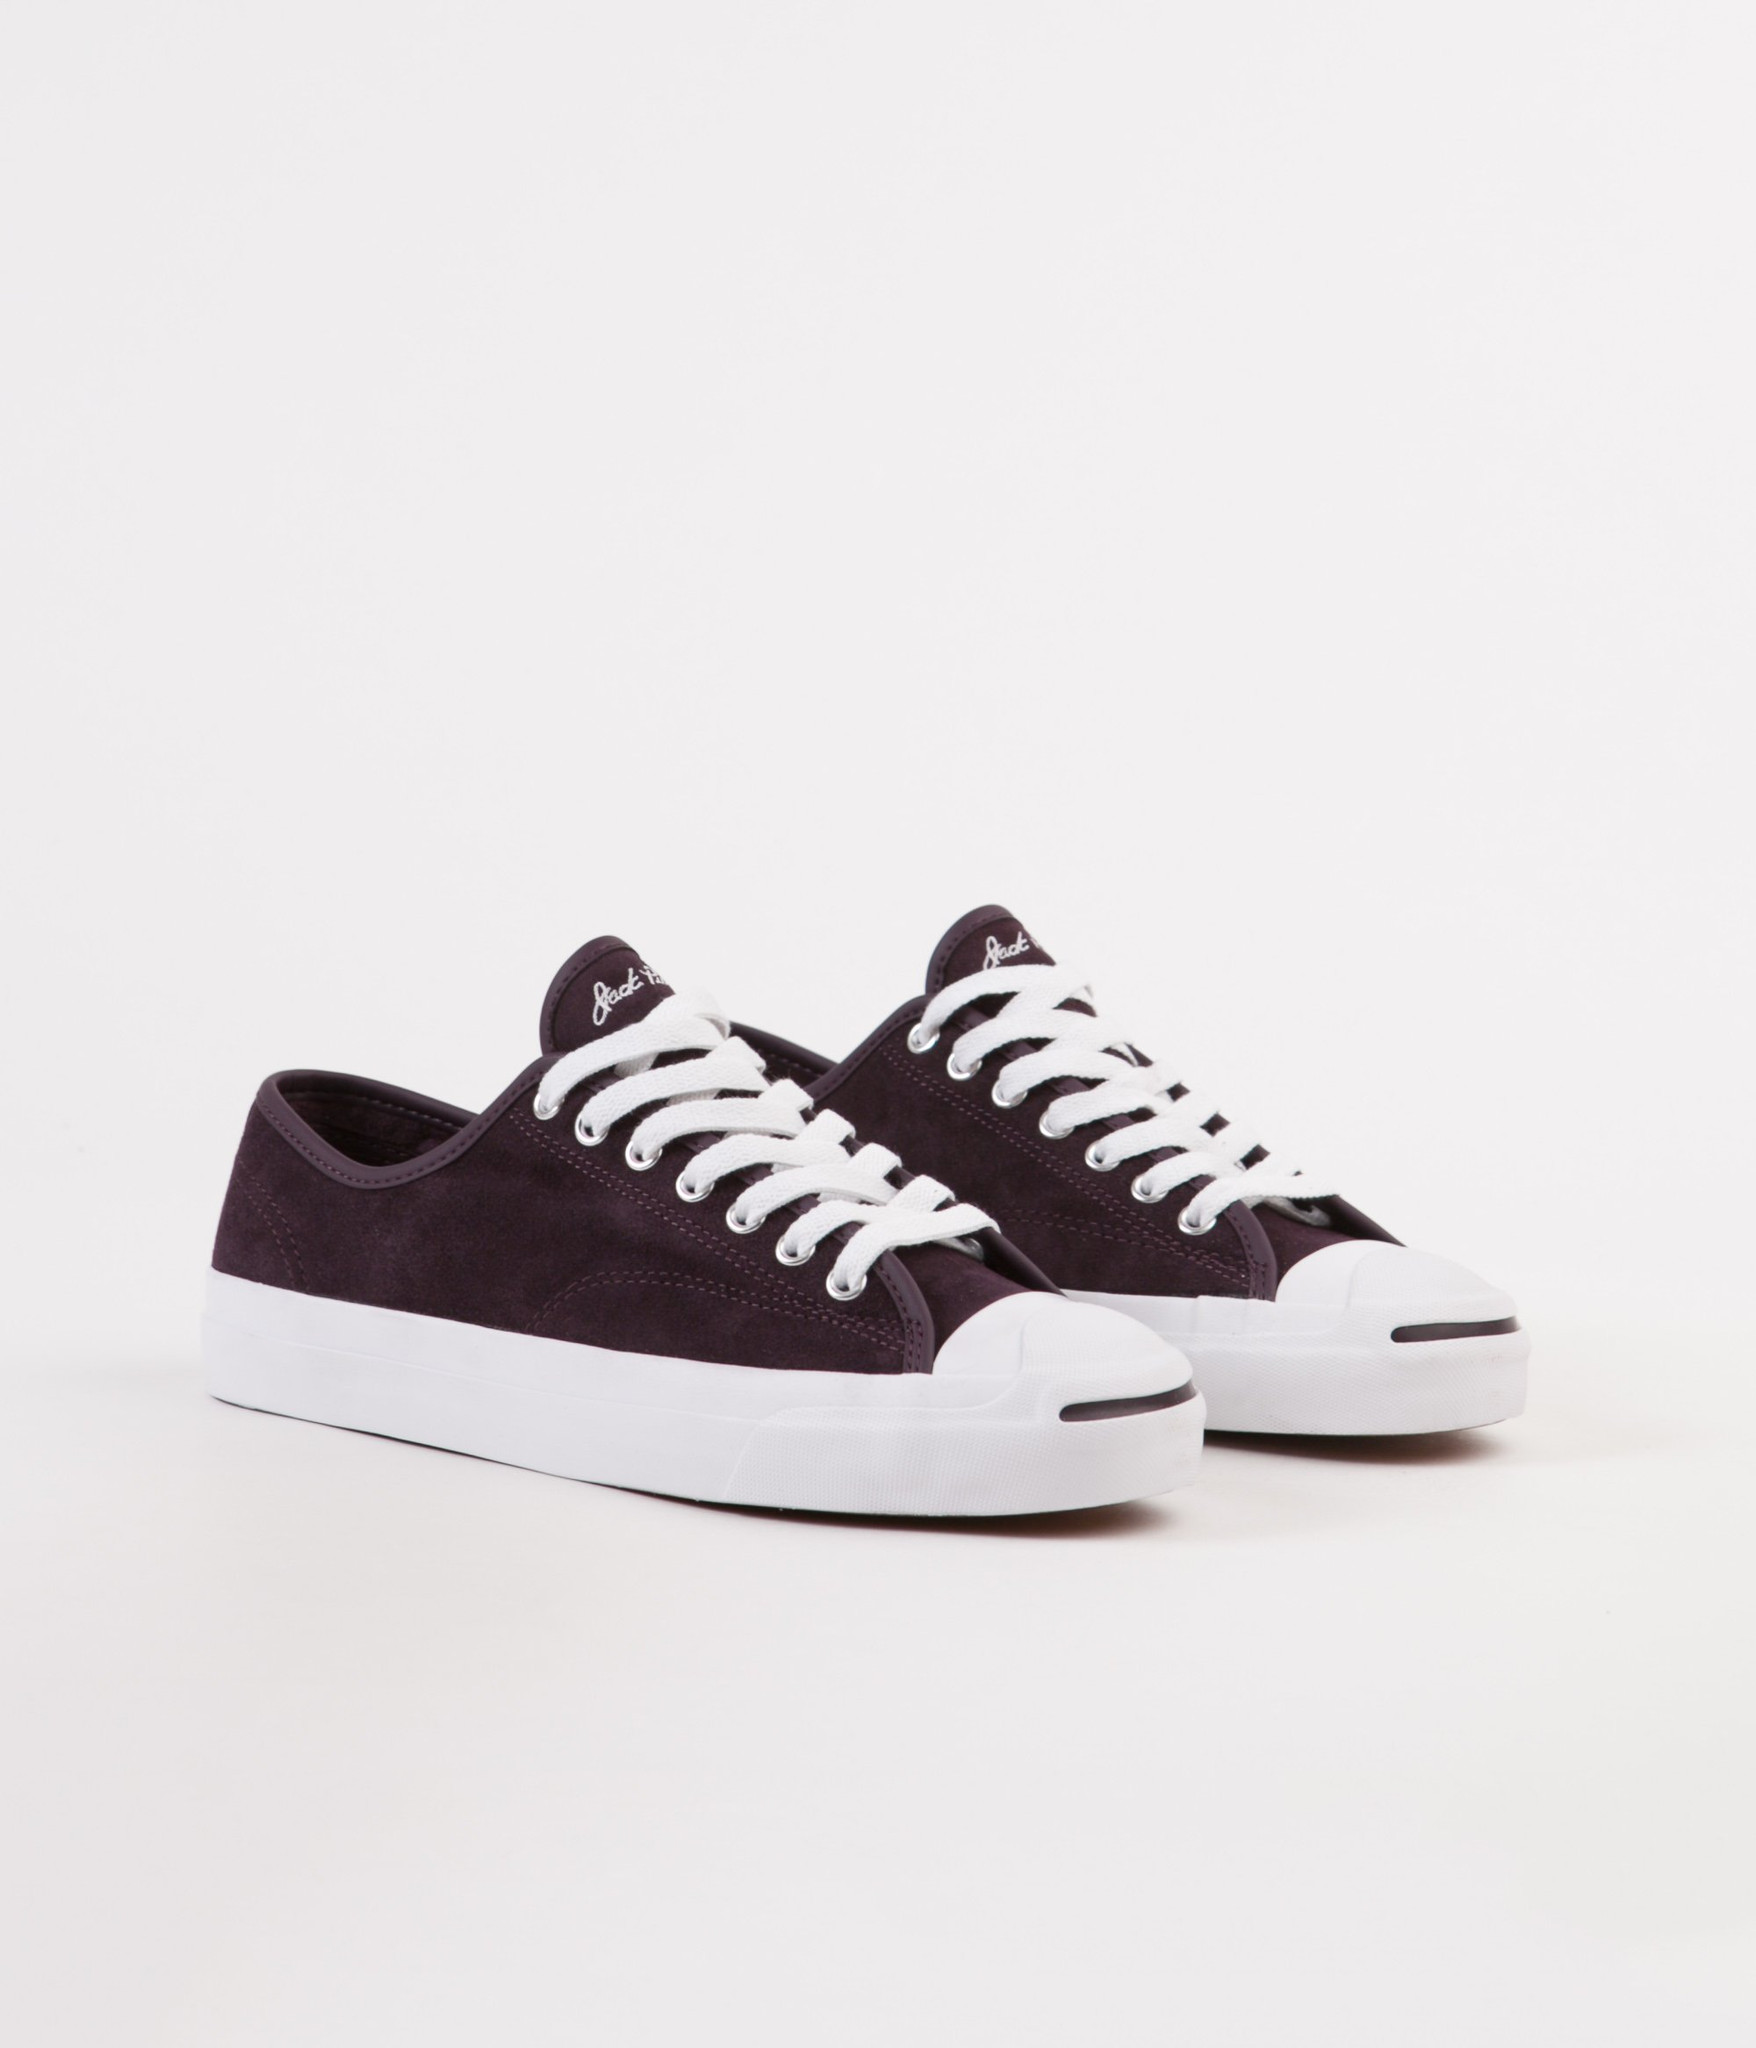 Converse CONS Jack Purcell JP Pro Ox